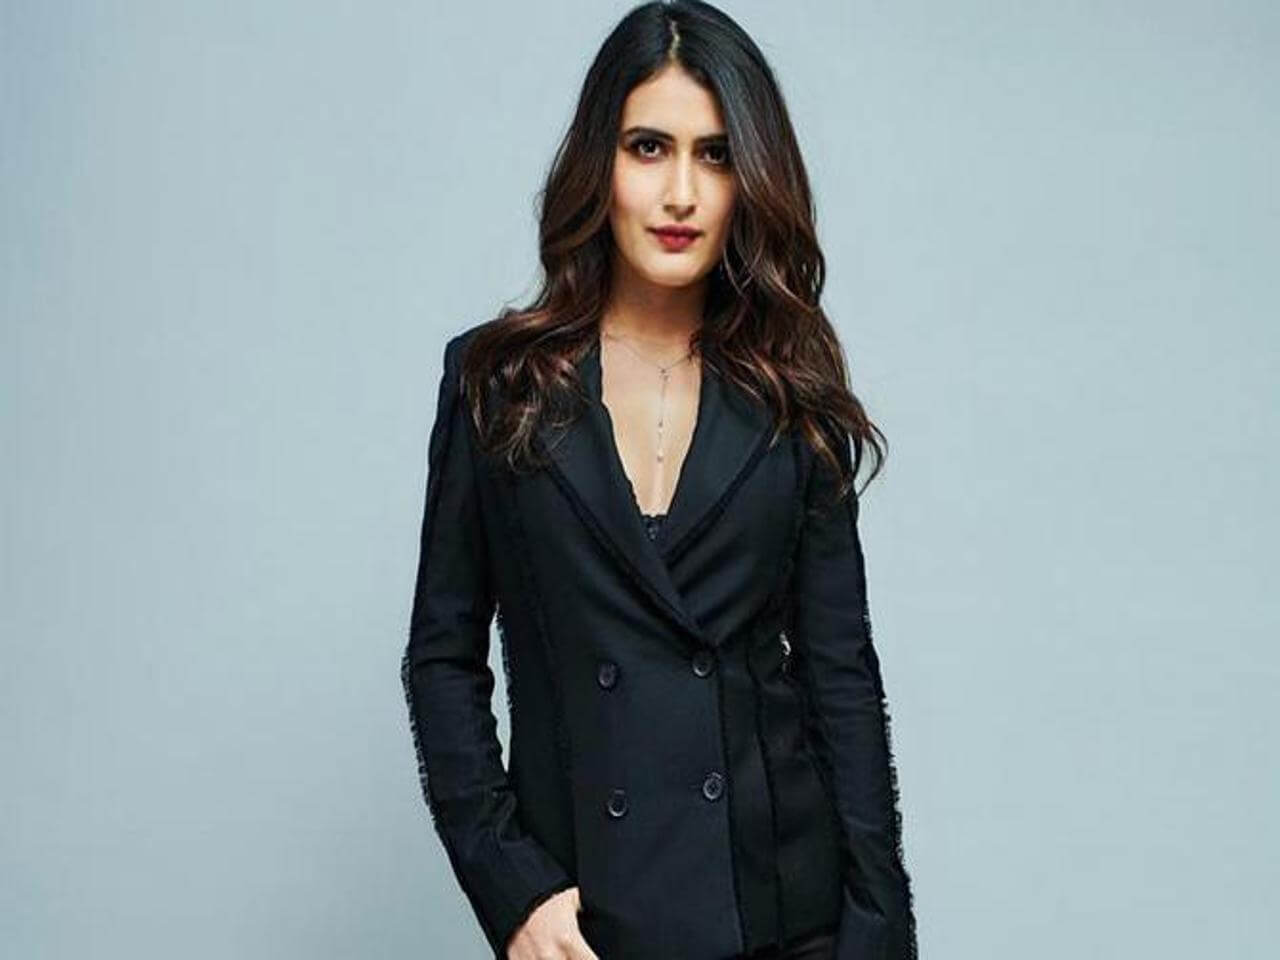 Fatima Sana Shaikh Age, Movies, Height, Biography, Husband, Image(photos), Parents, Religion, Birthday, Net Worth, Education, News, Instagram, Wiki, Facebook, Imdb, Twitter (79)